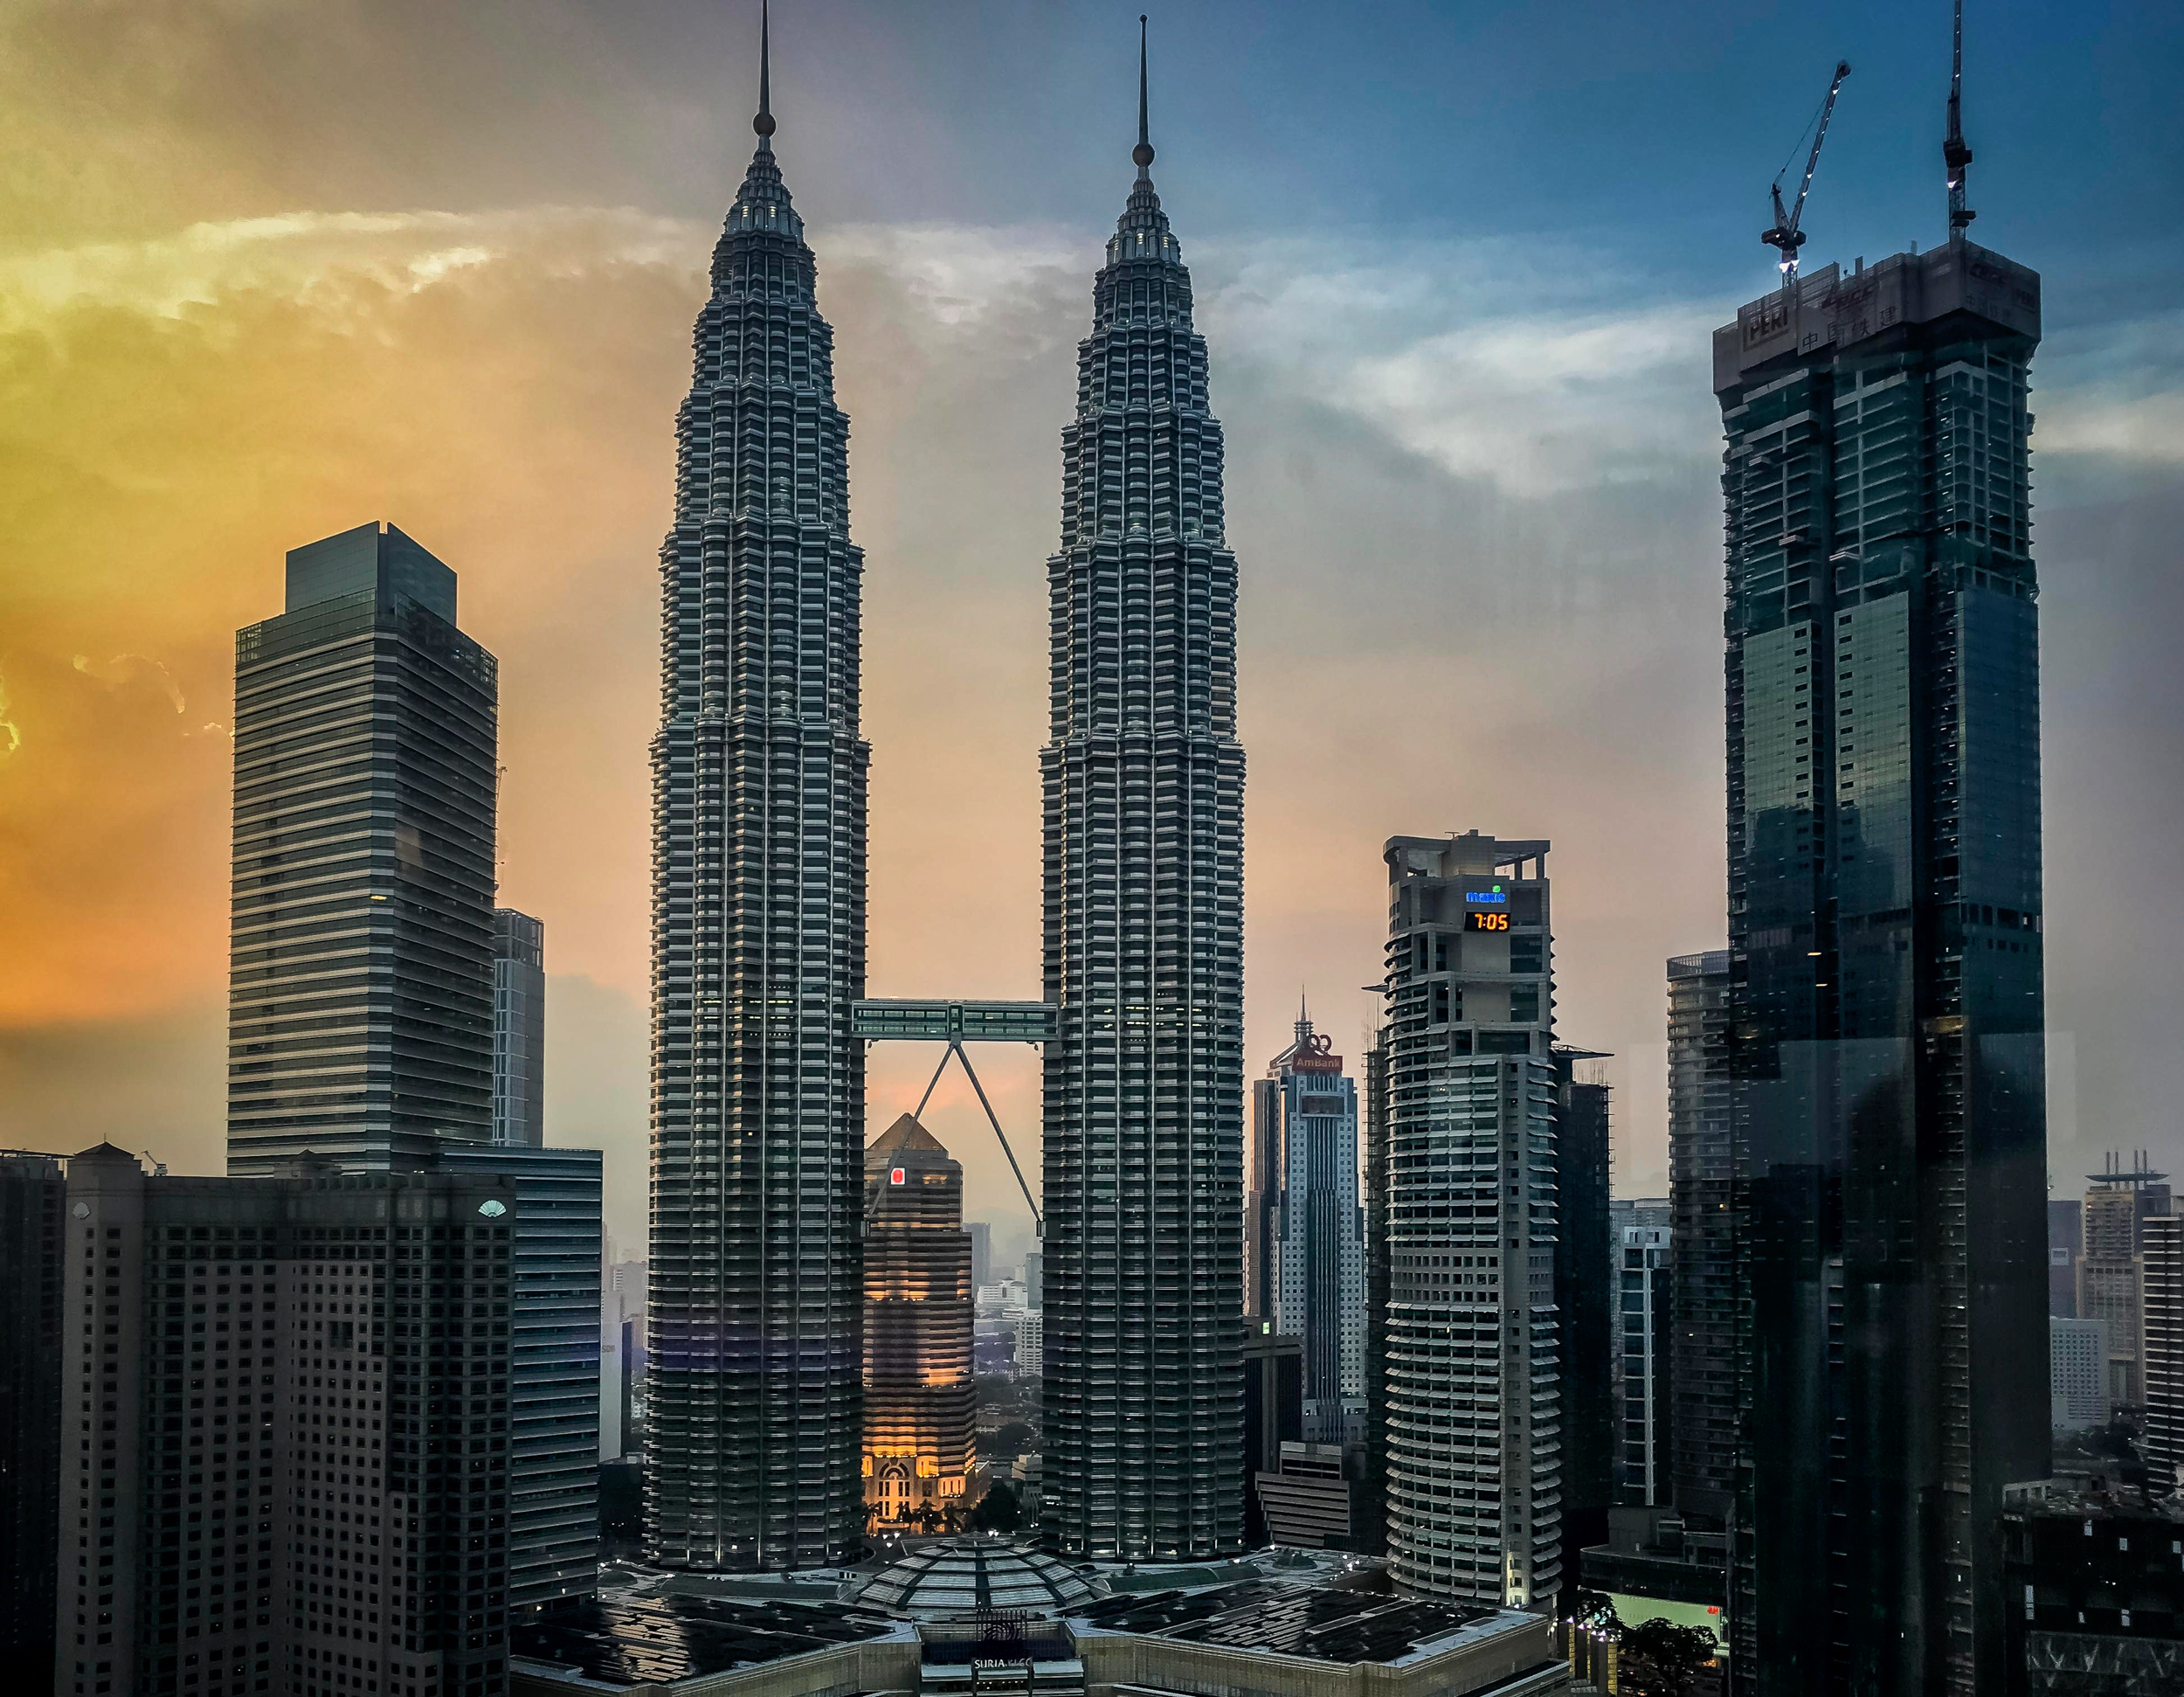 Petronas Twin Towers as seen from SkyBar at Traders Hotel